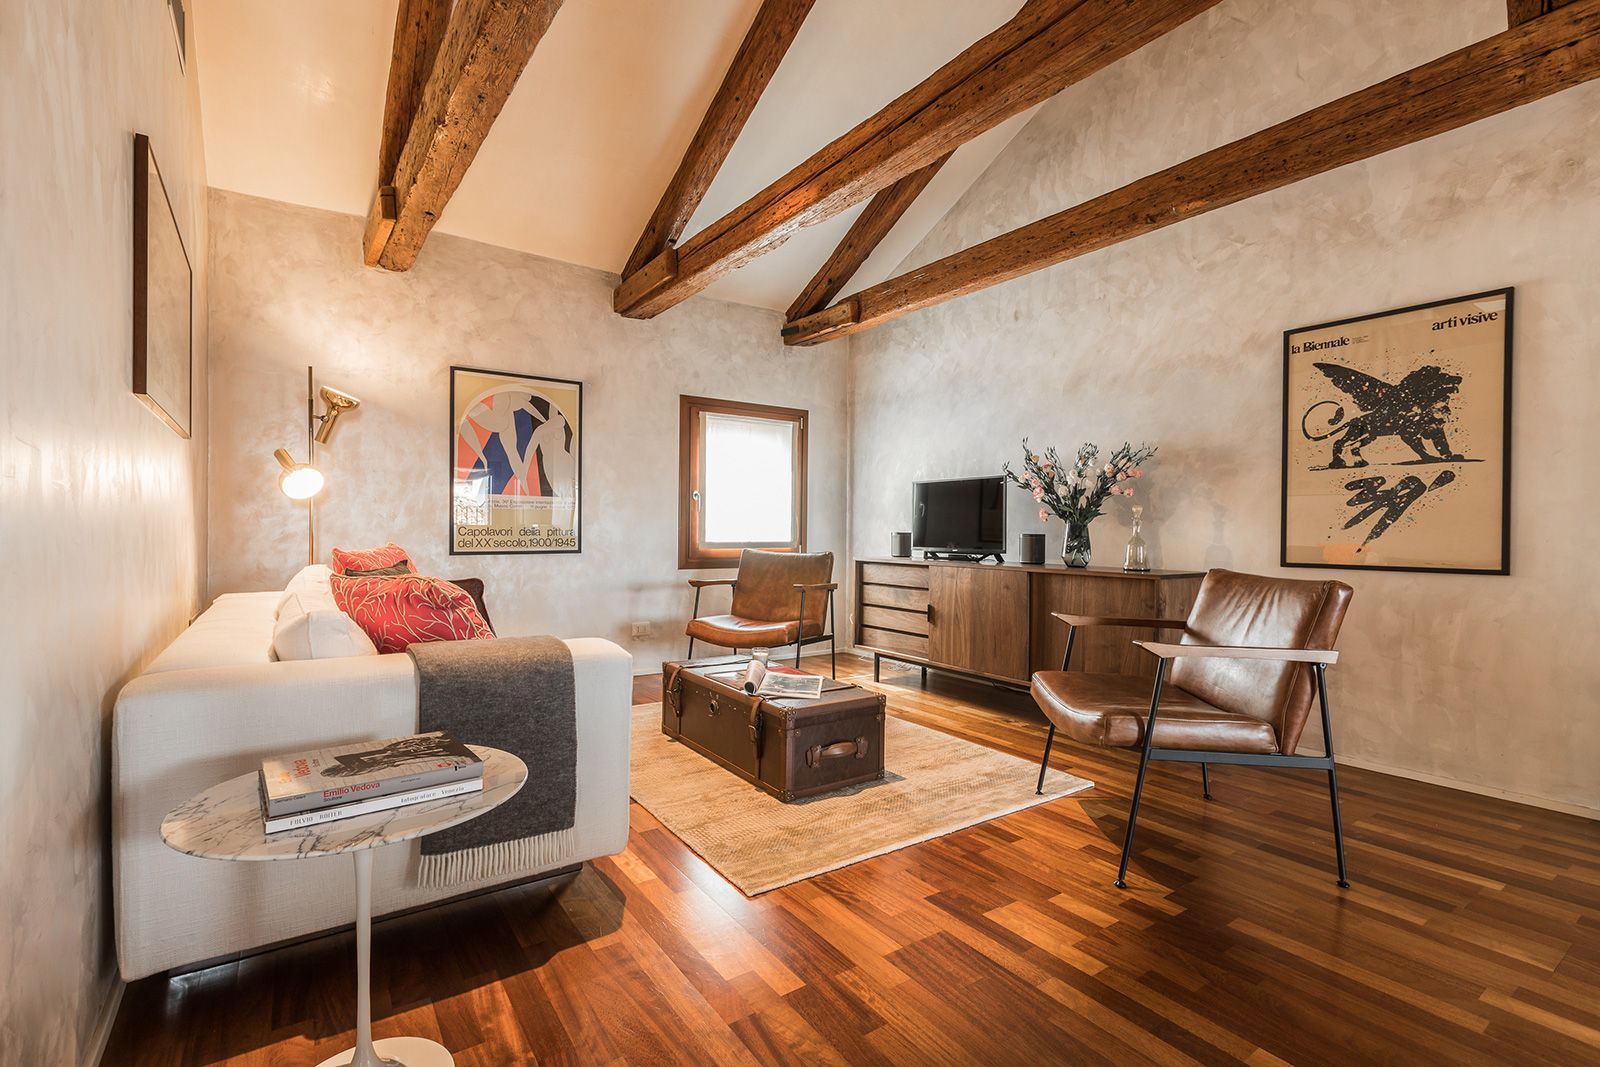 in the sitting room there is a comfortable double sofa-bed